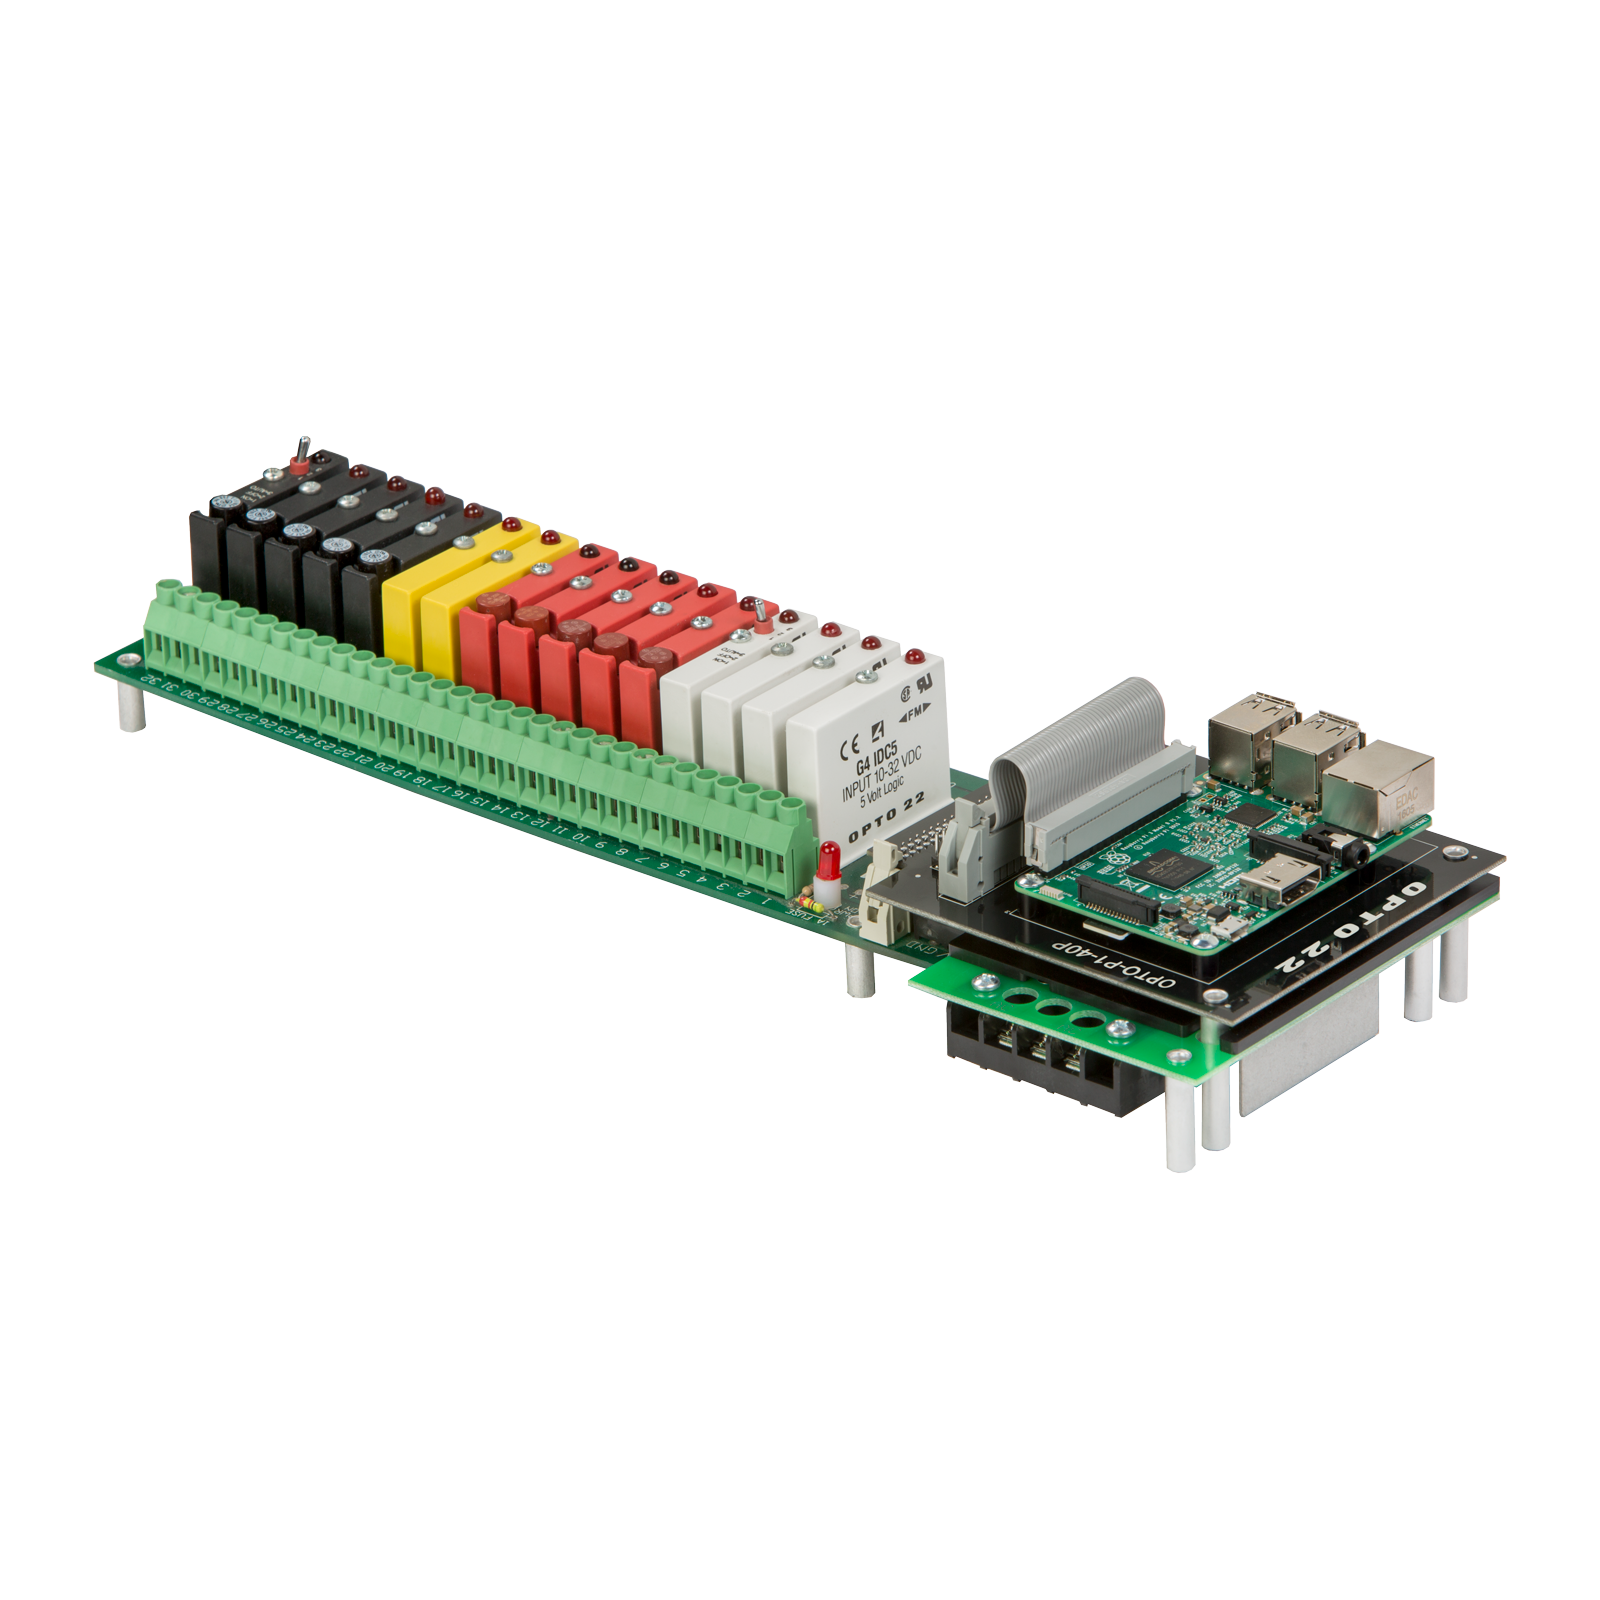 Drivers Relays And Solid State Mbed Motor Control Circuit File Alternative Link Bidirectionmotorspeed A Board With Space For Assorted Opto22 I O Modules Small Computer Such As Raspberry Pi Can Add Iot Features To Industrial